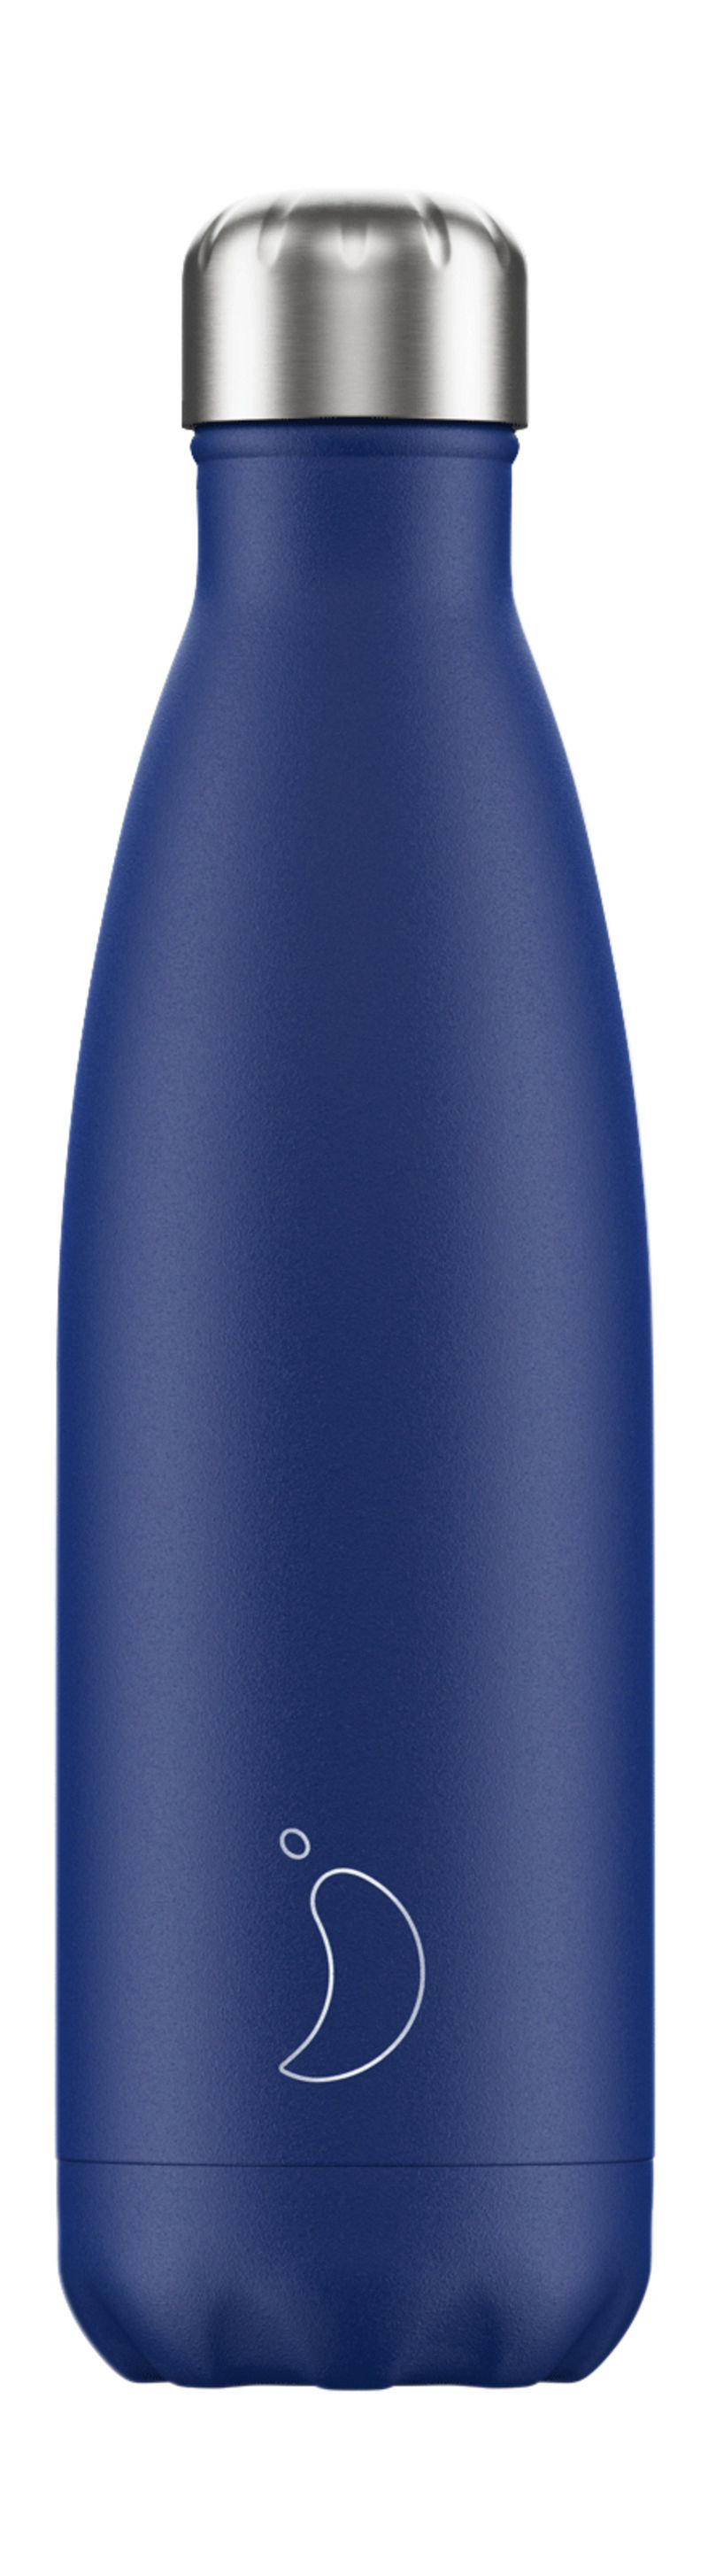 BOTELLA INOX AZUL MATE 500ML